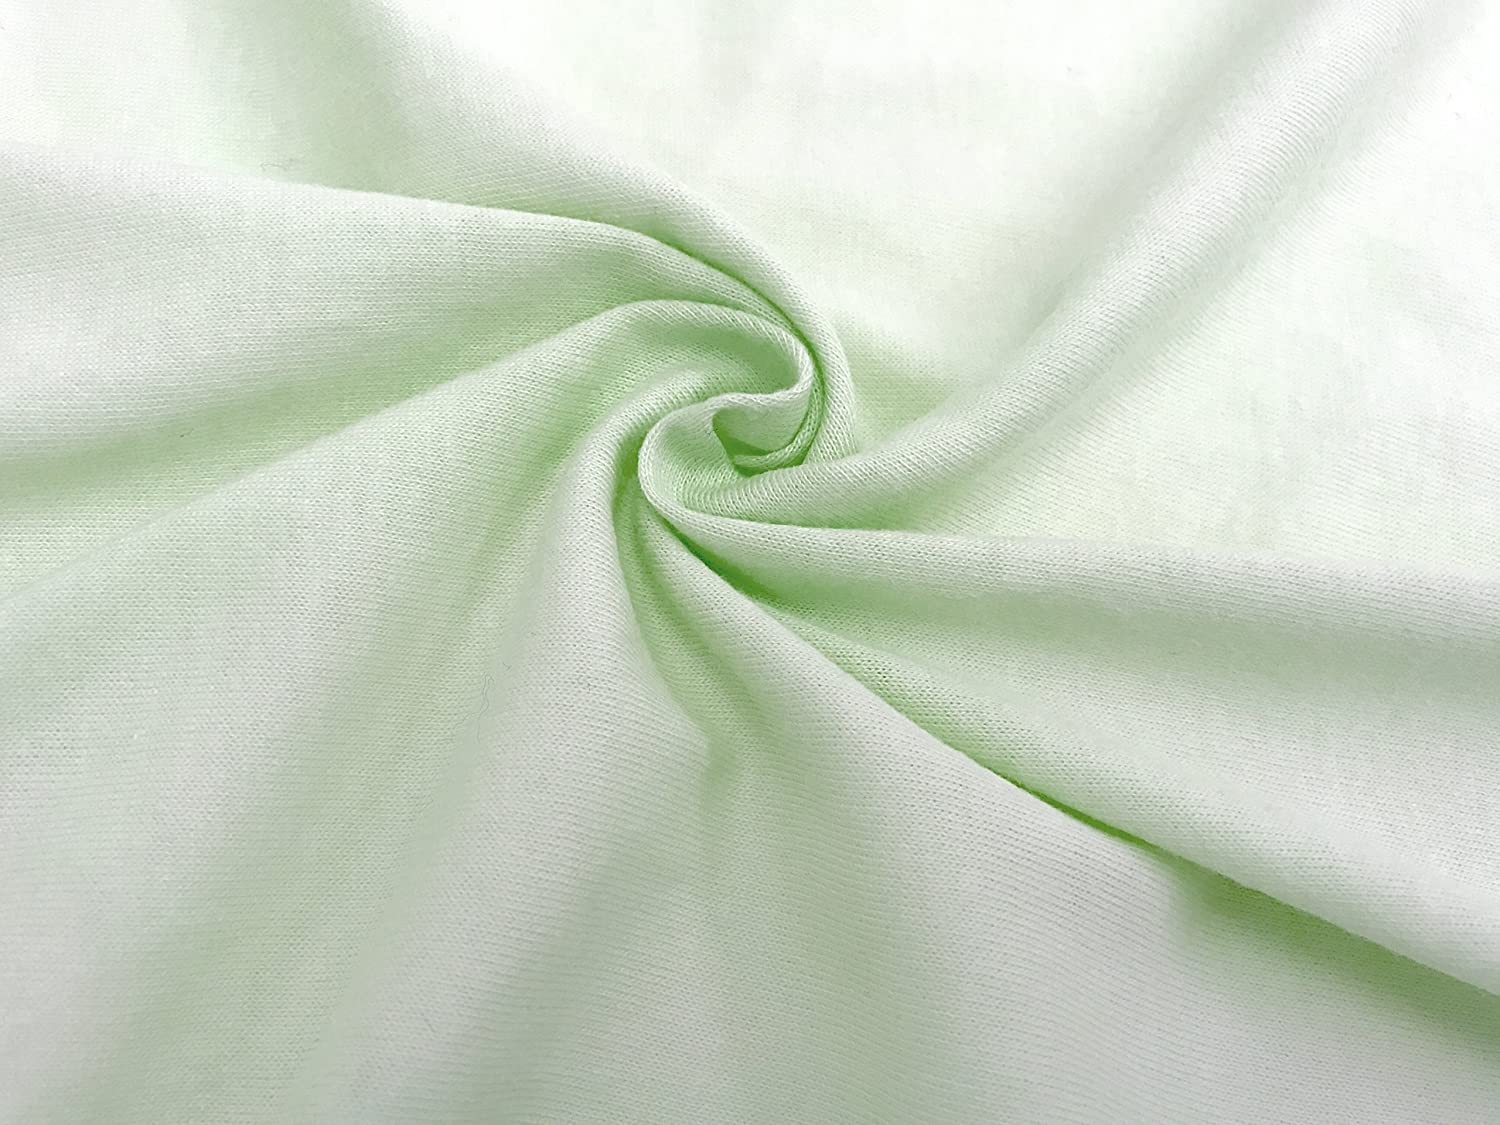 for Boys and Girls American Baby Company 100/% Natural Cotton Supreme Jersey Knit Fitted Bassinet Sheet Celery Soft Breathable